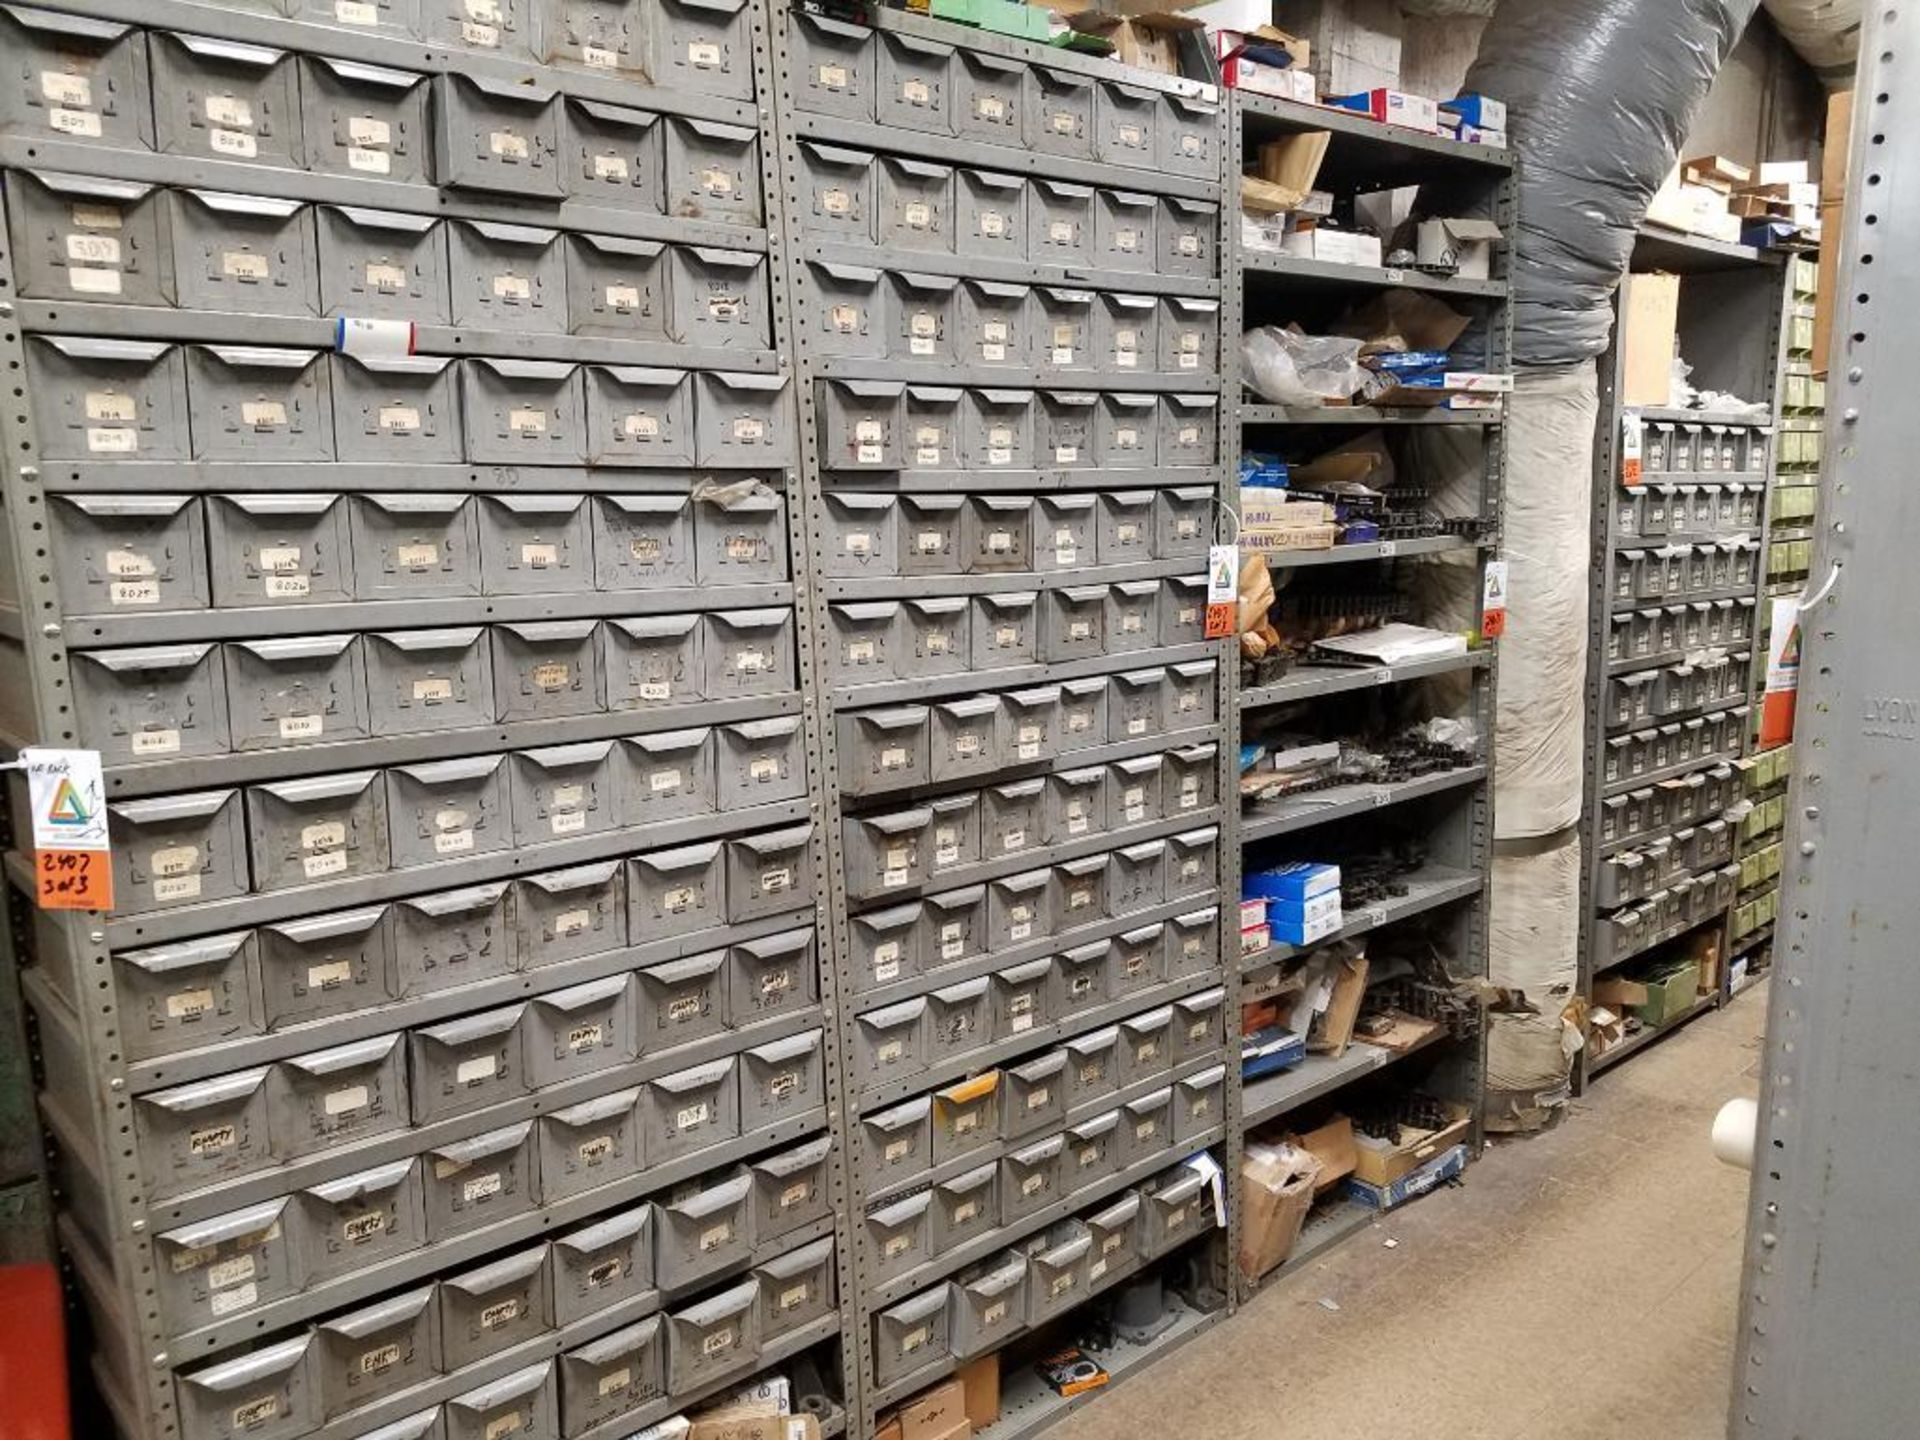 all shelving and storage units located in MRO room - Image 4 of 11